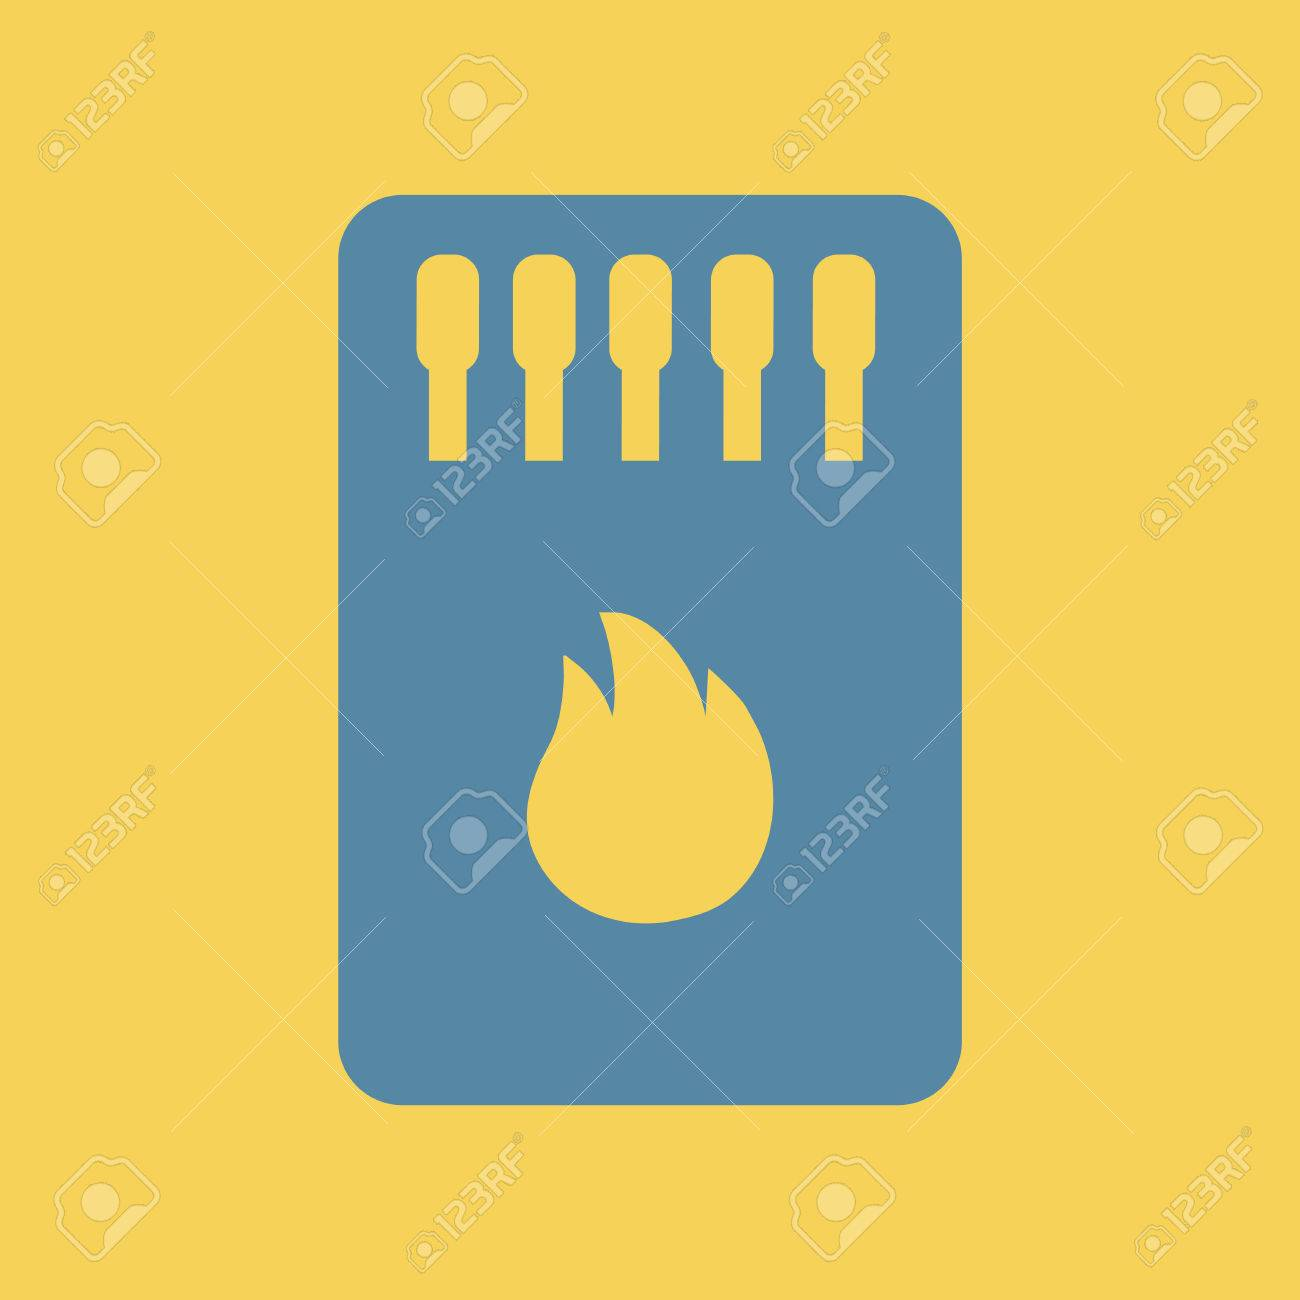 Simple Illustration Of A Flat Icon Of A Matchbox And Matches ...